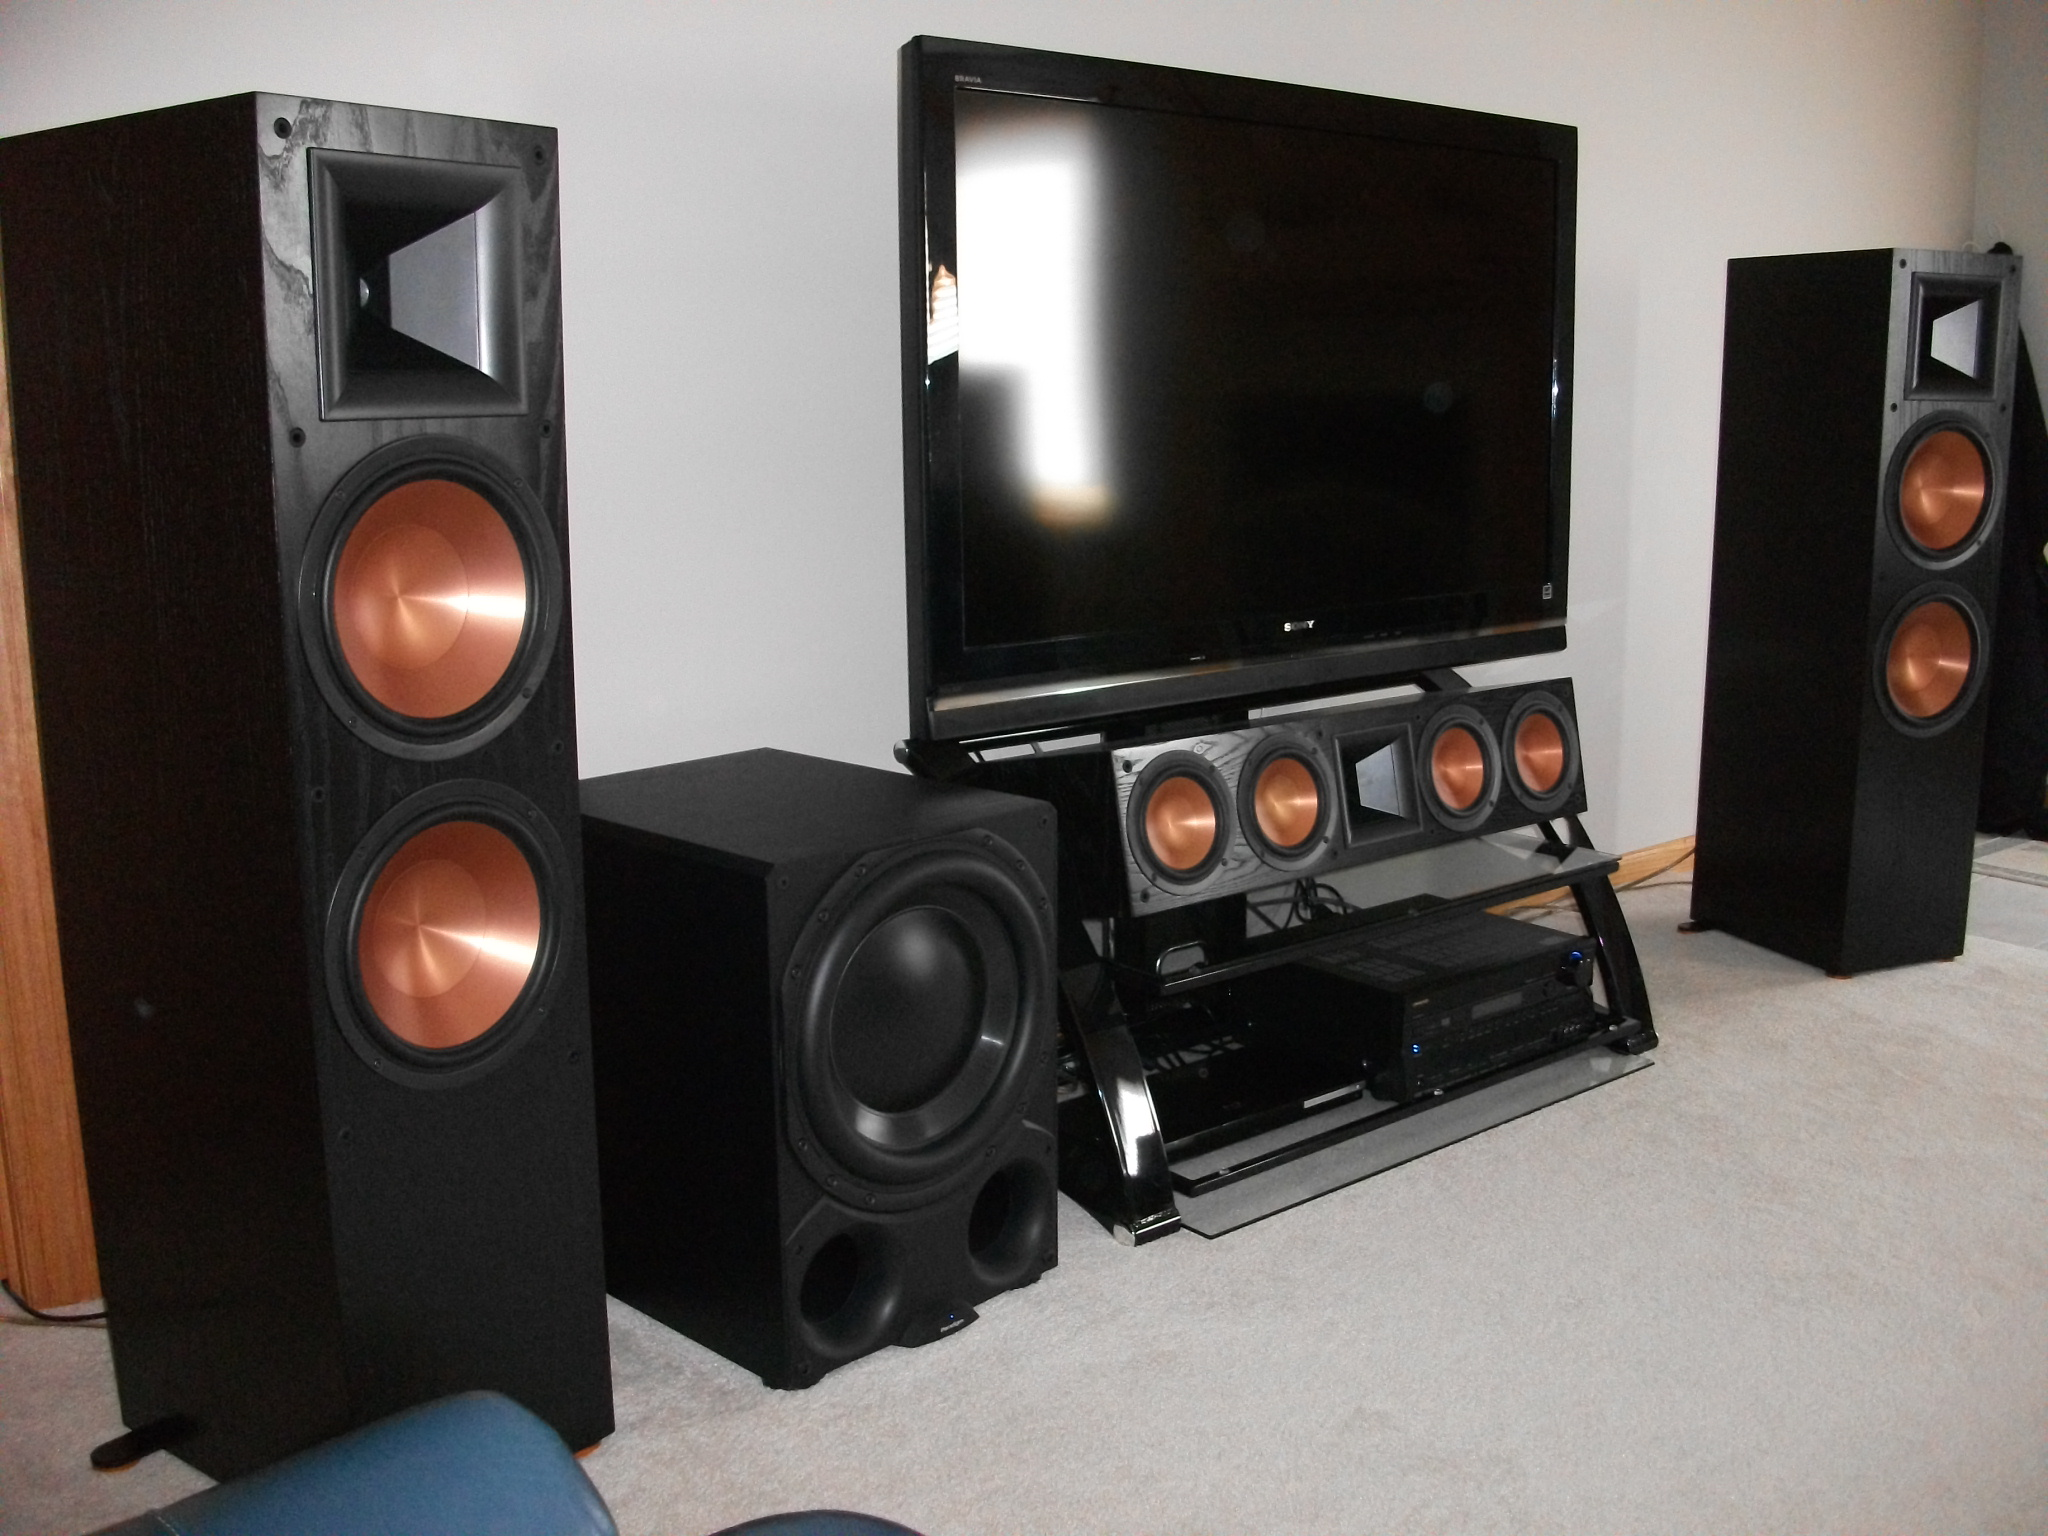 rf 7ii owners thread home theater the klipsch audio community. Black Bedroom Furniture Sets. Home Design Ideas